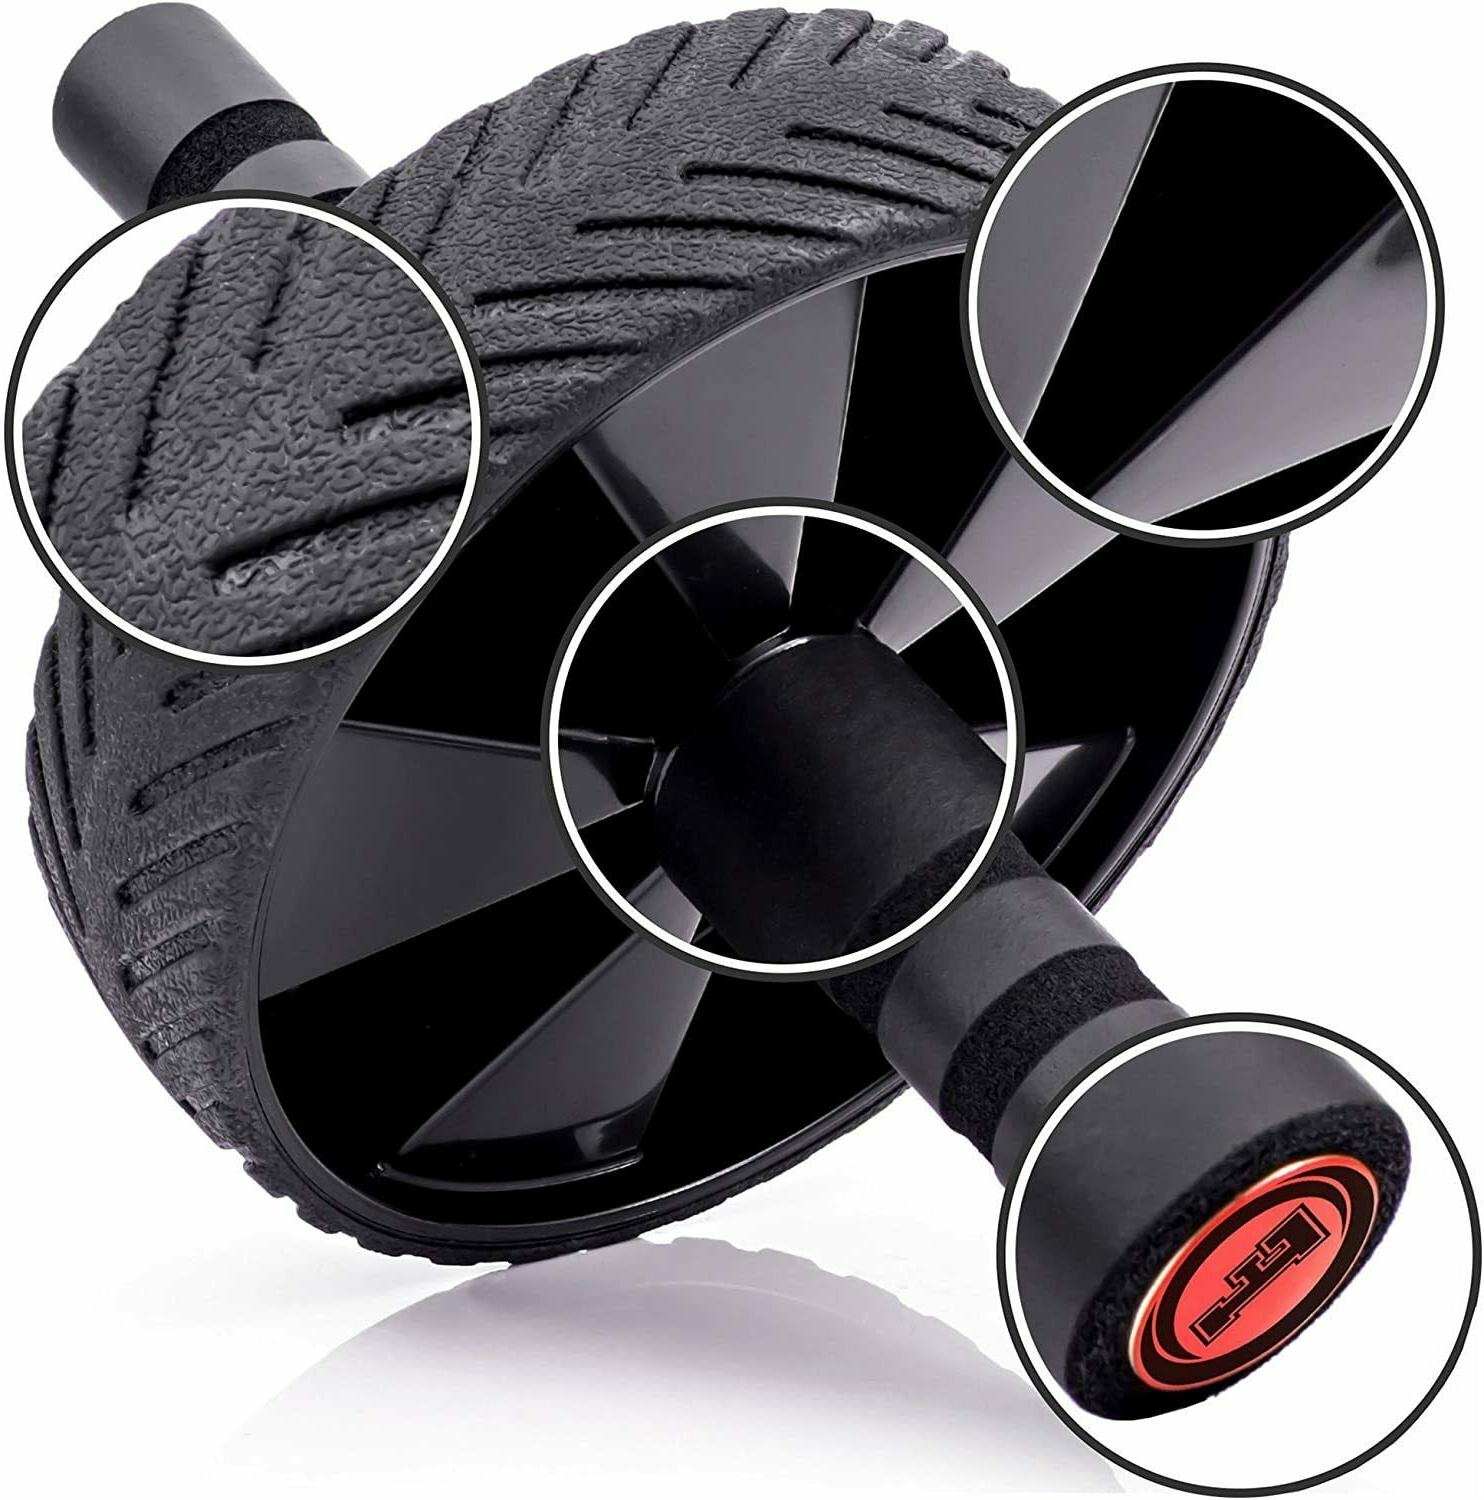 Fitness Ab Abs Workout Wheel Equipment Machine for Home Gym